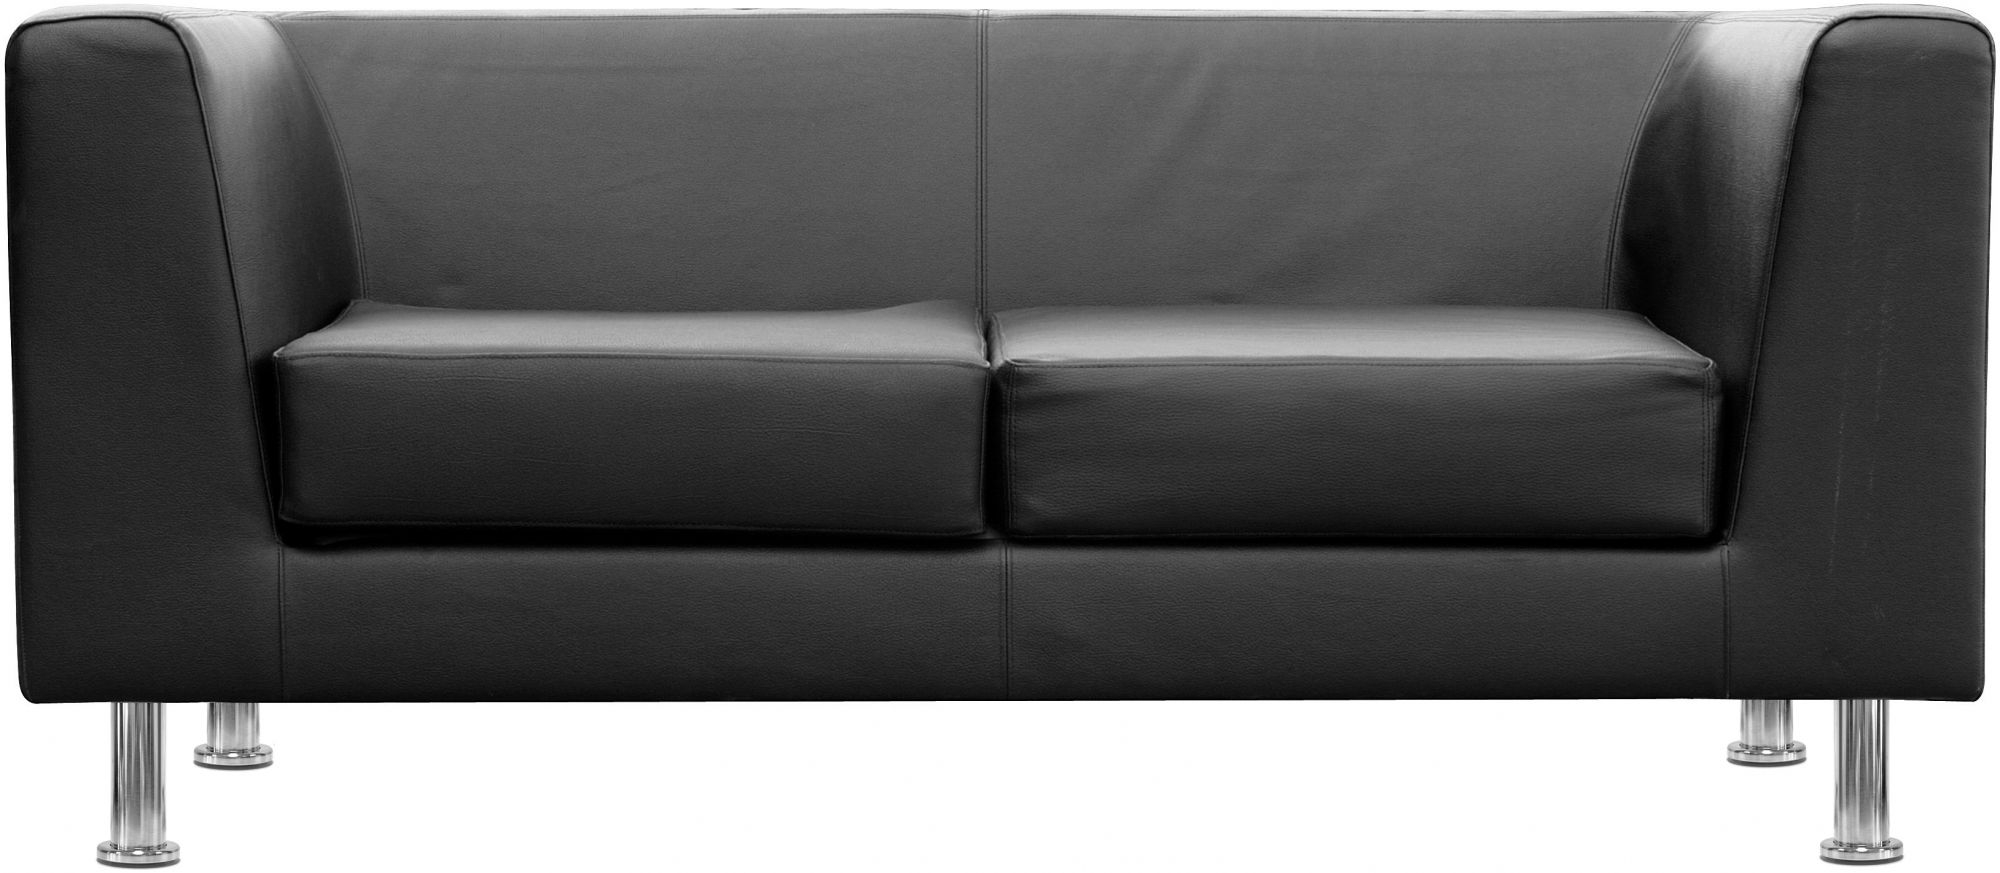 Frvi Box Two Seater Sofa Band A Fabric Regarding Two Seater Sofas (Photo 11 of 15)